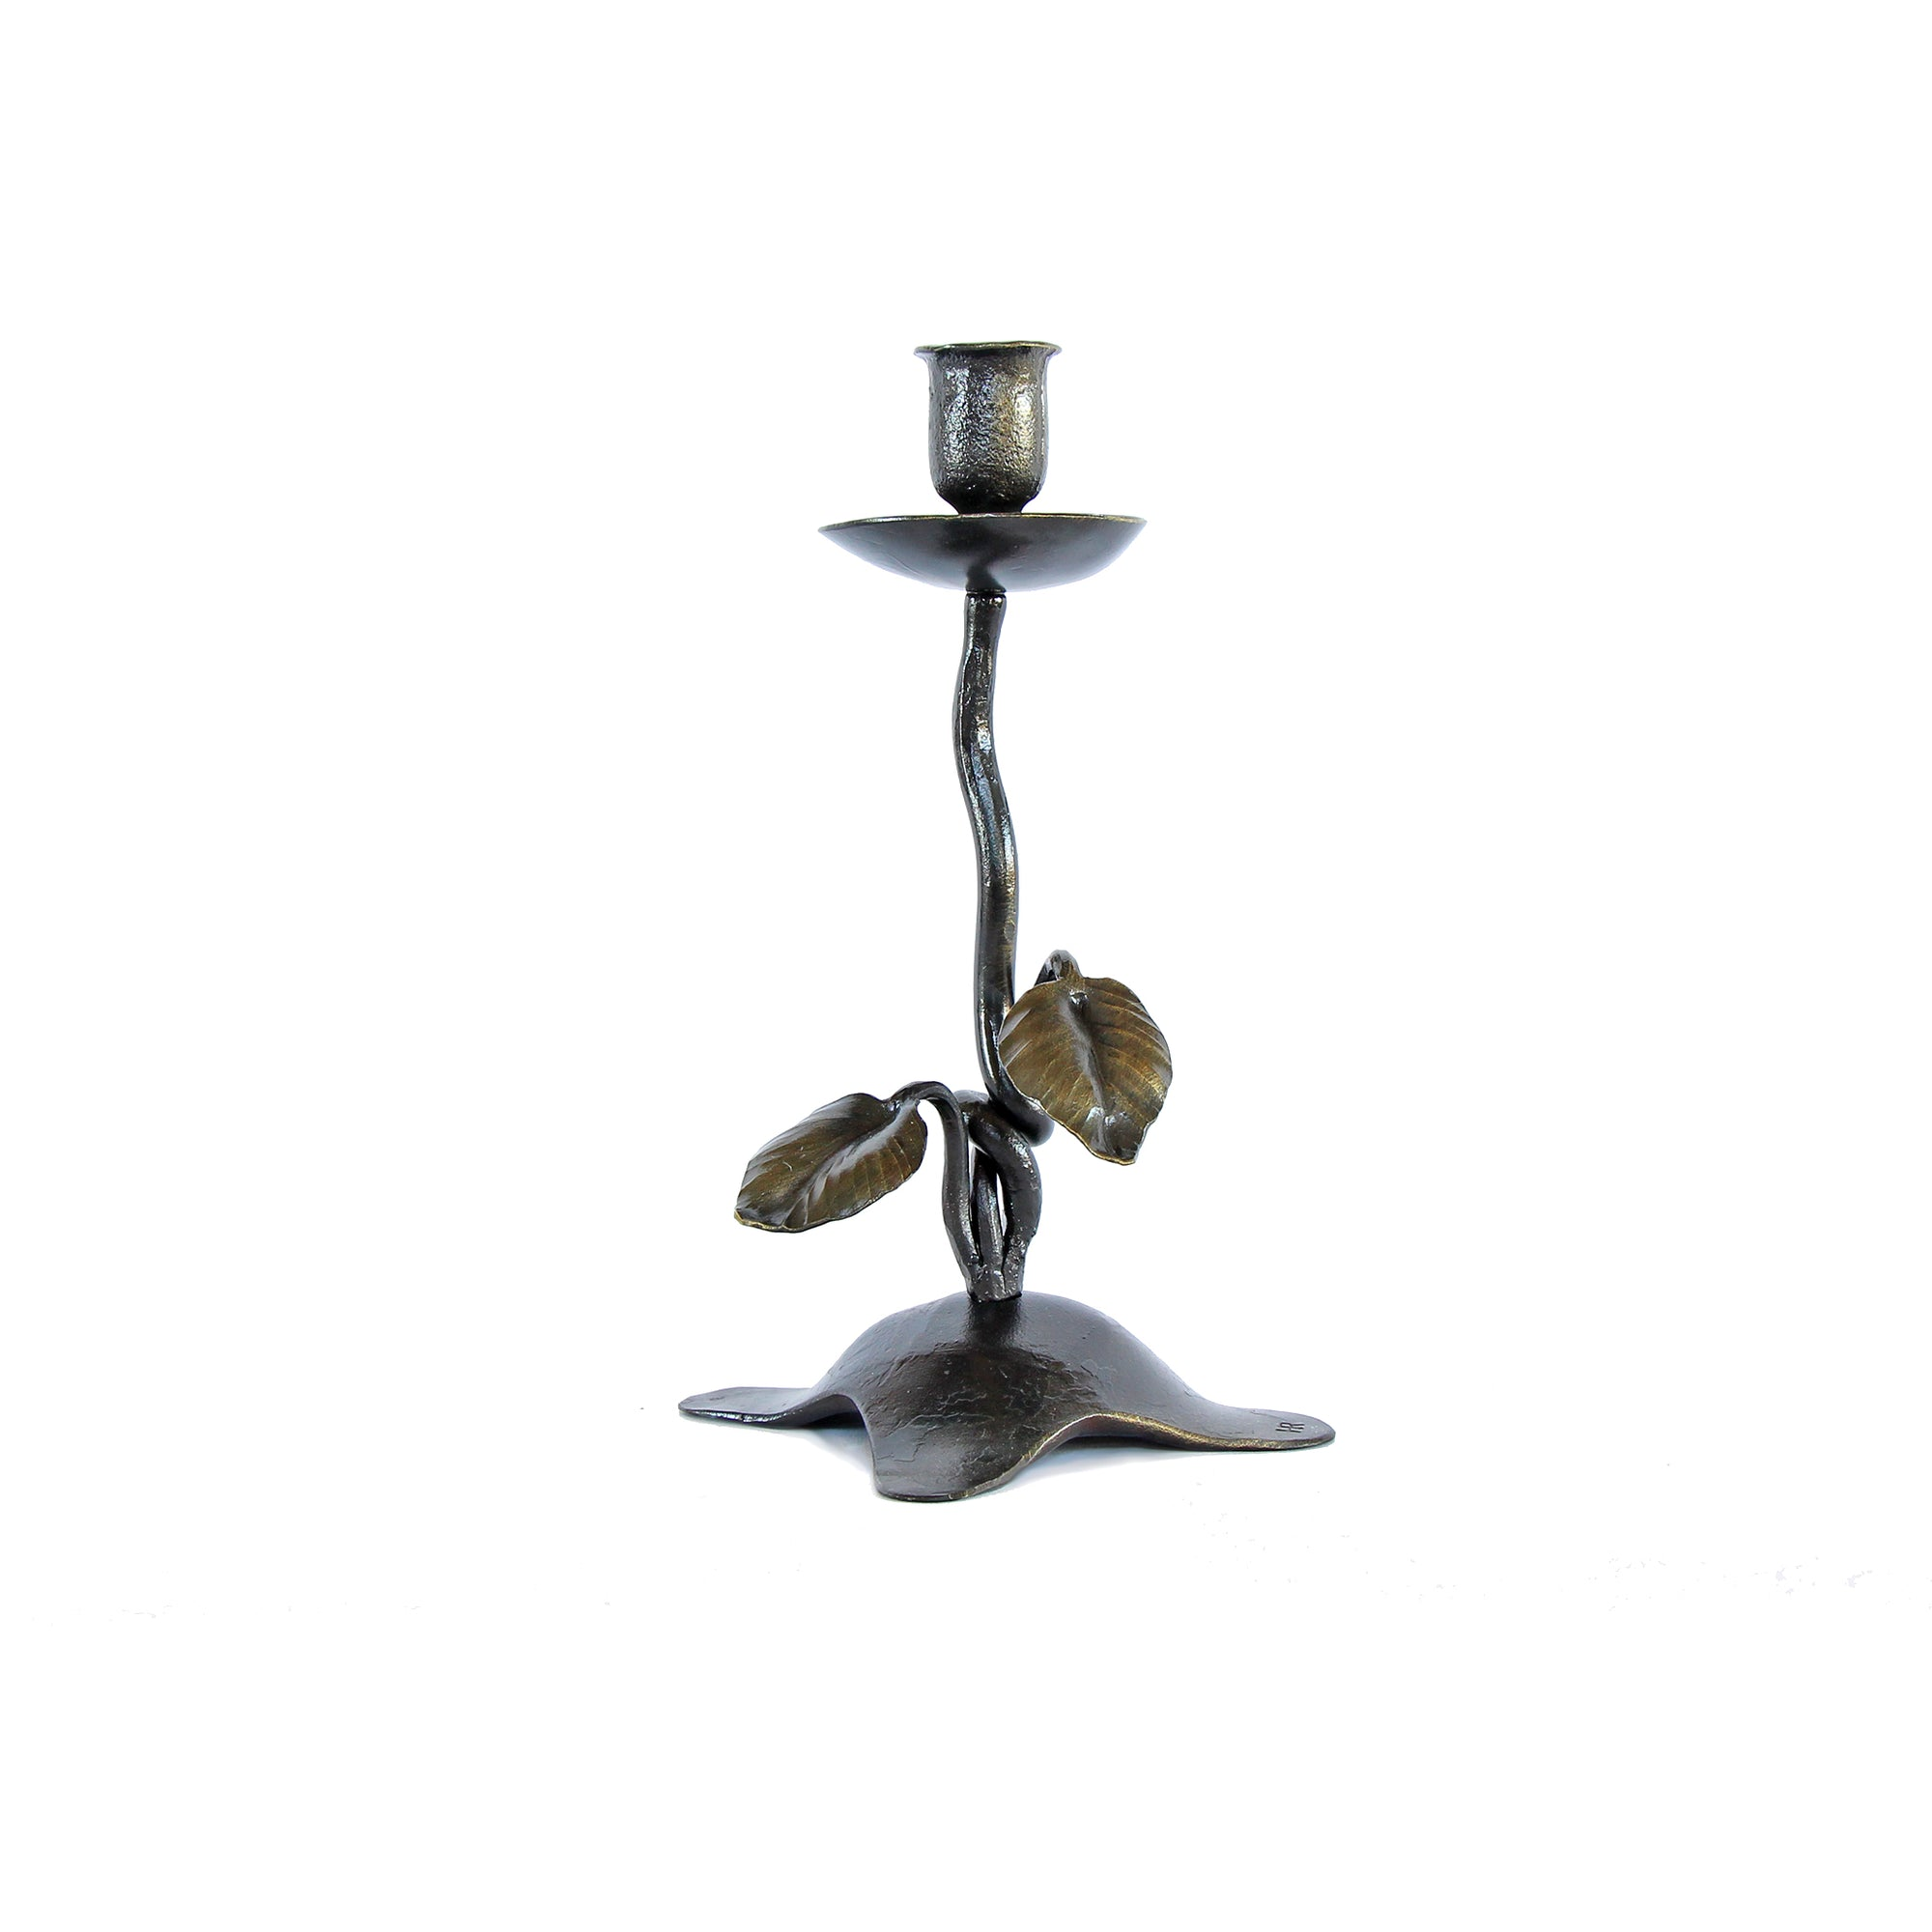 Standing Candle Holder